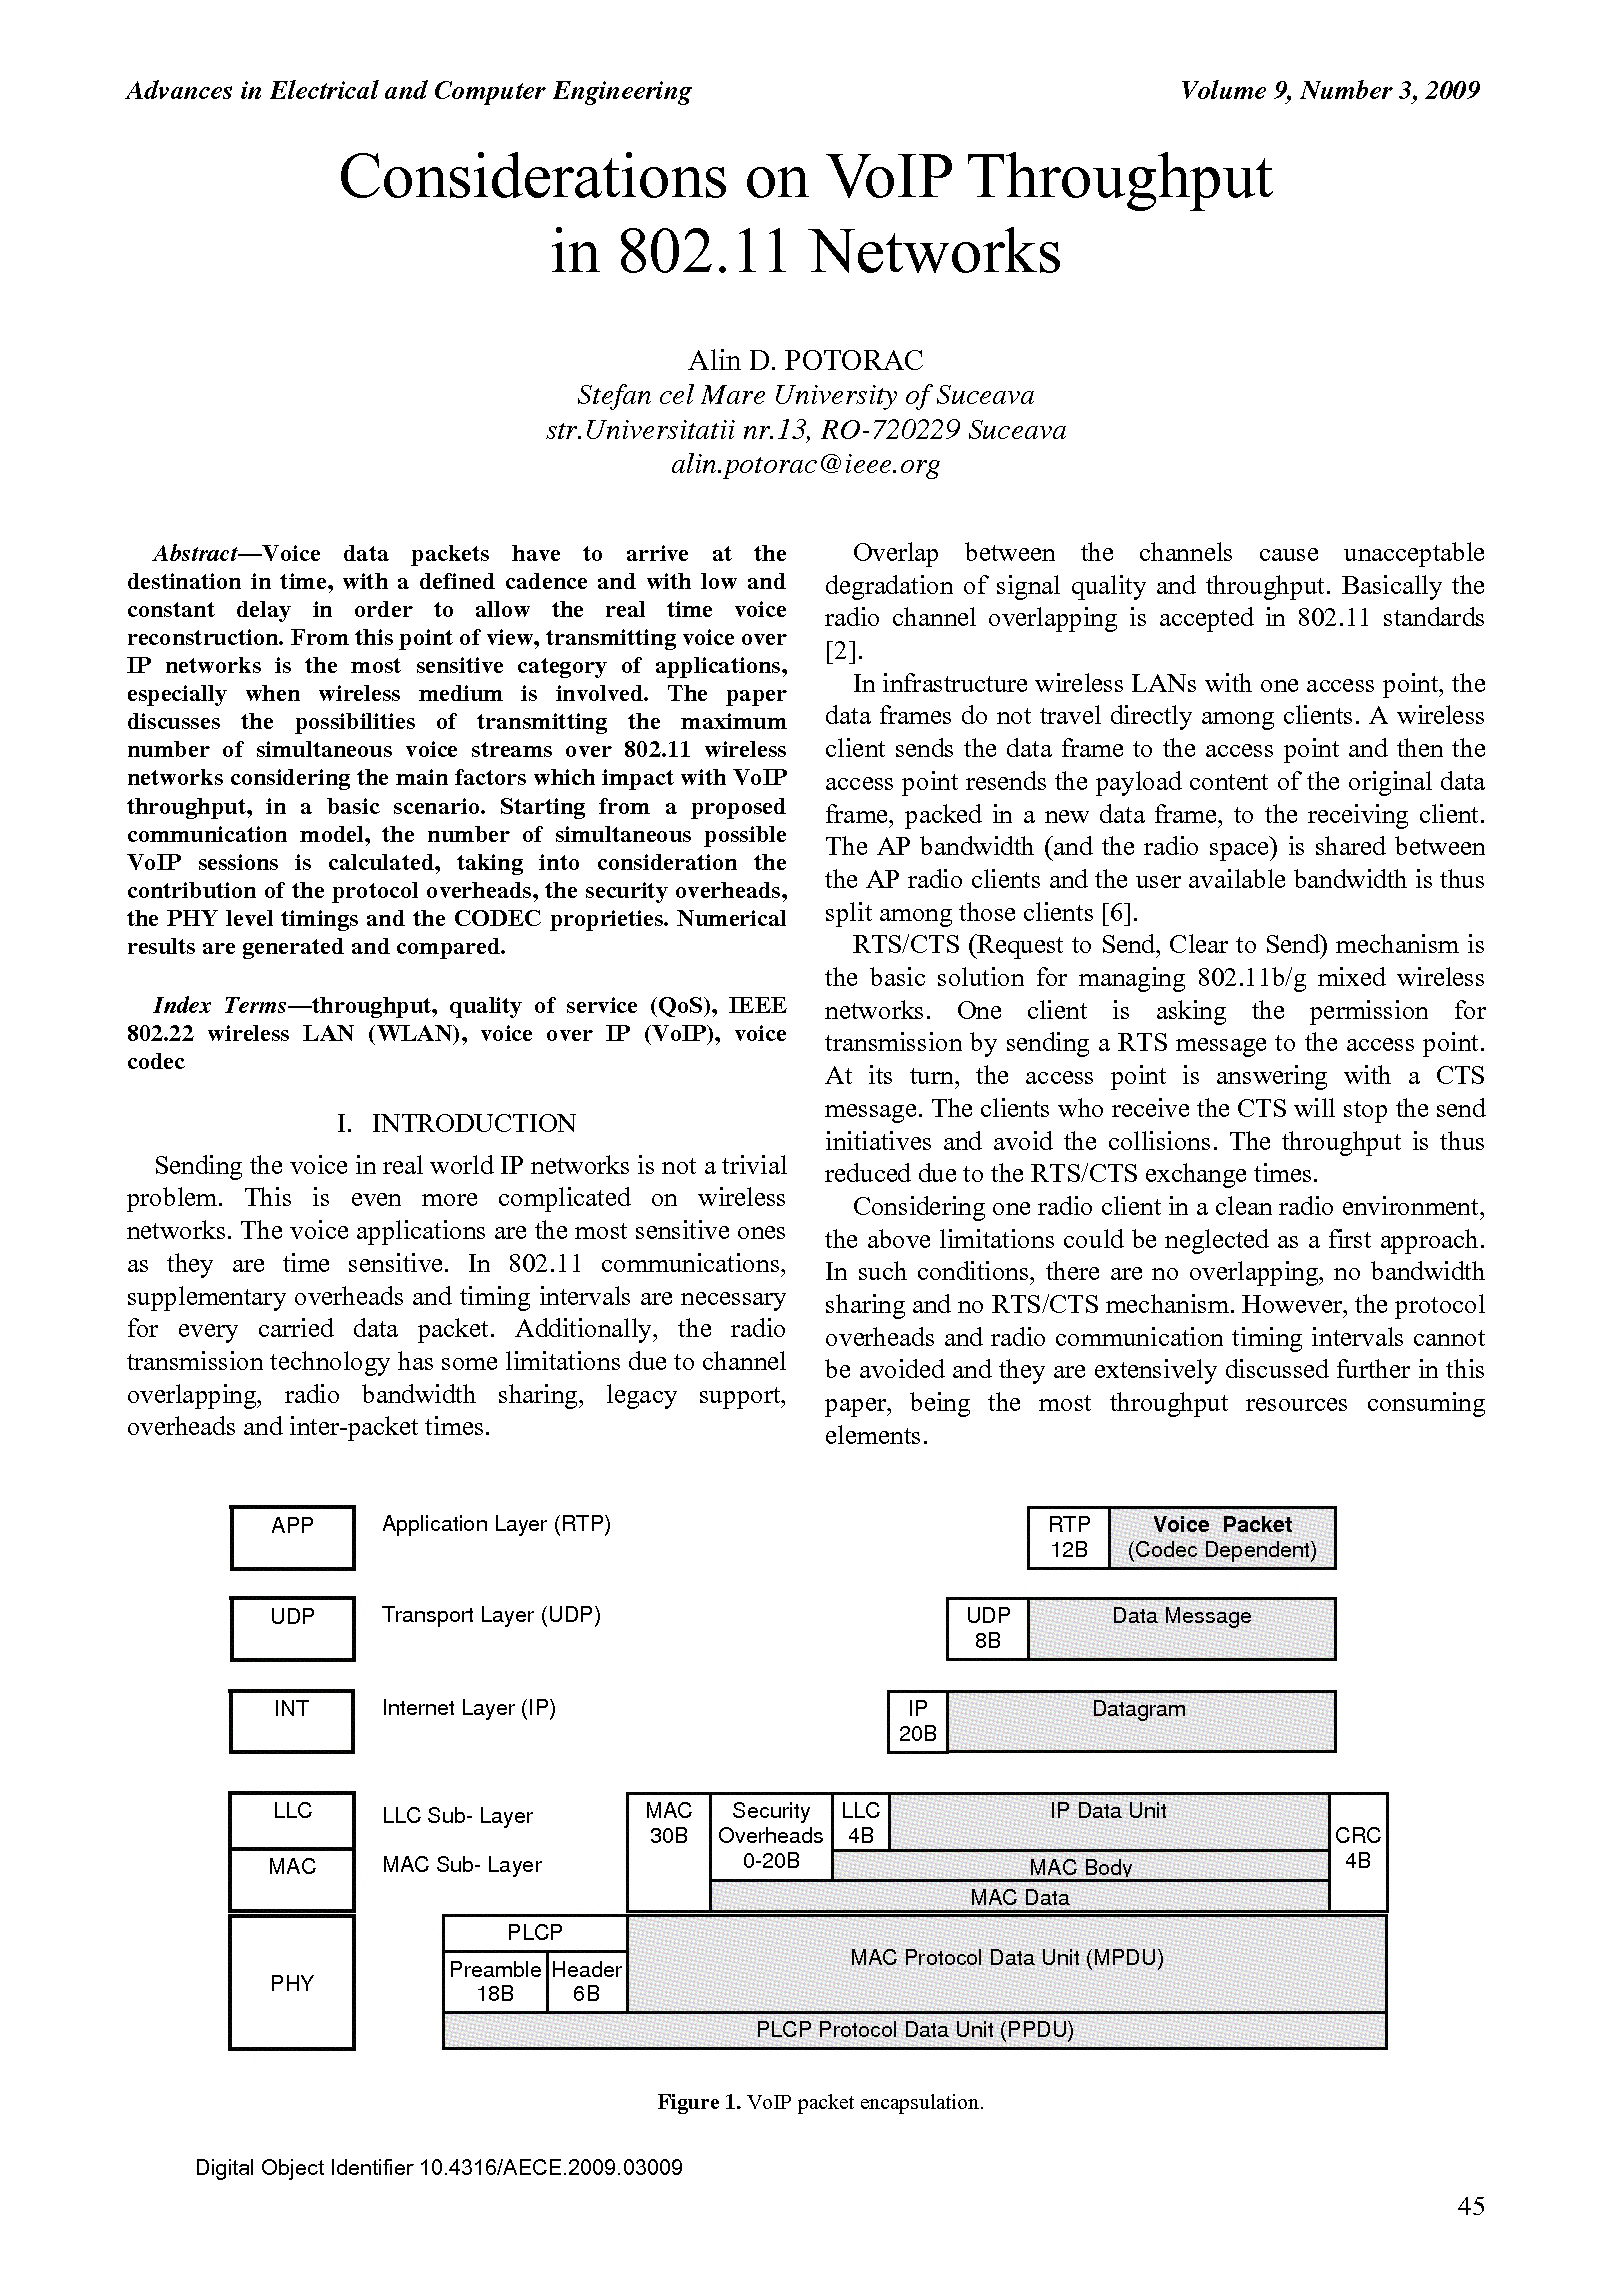 PDF Quickview for paper with DOI:10.4316/AECE.2009.03009